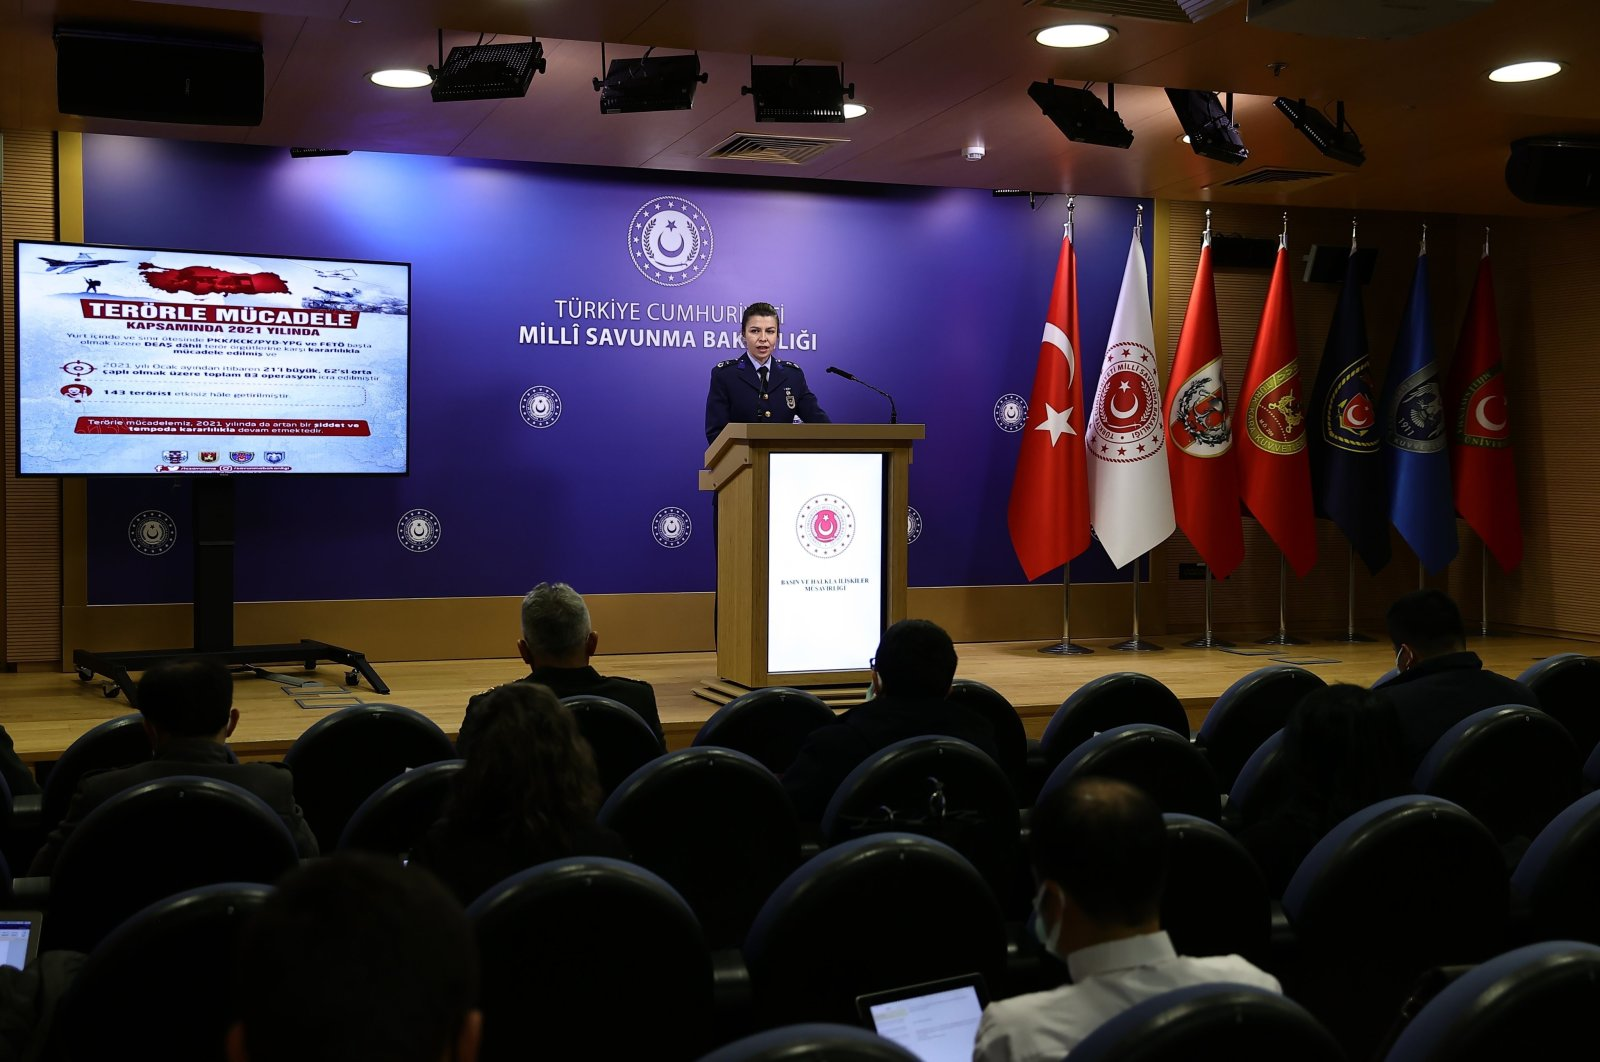 The Turkish Defense Ministry gives a press briefing to journalists in the capital Ankara, Turkey, March 8, 2021. (IHA Photo)